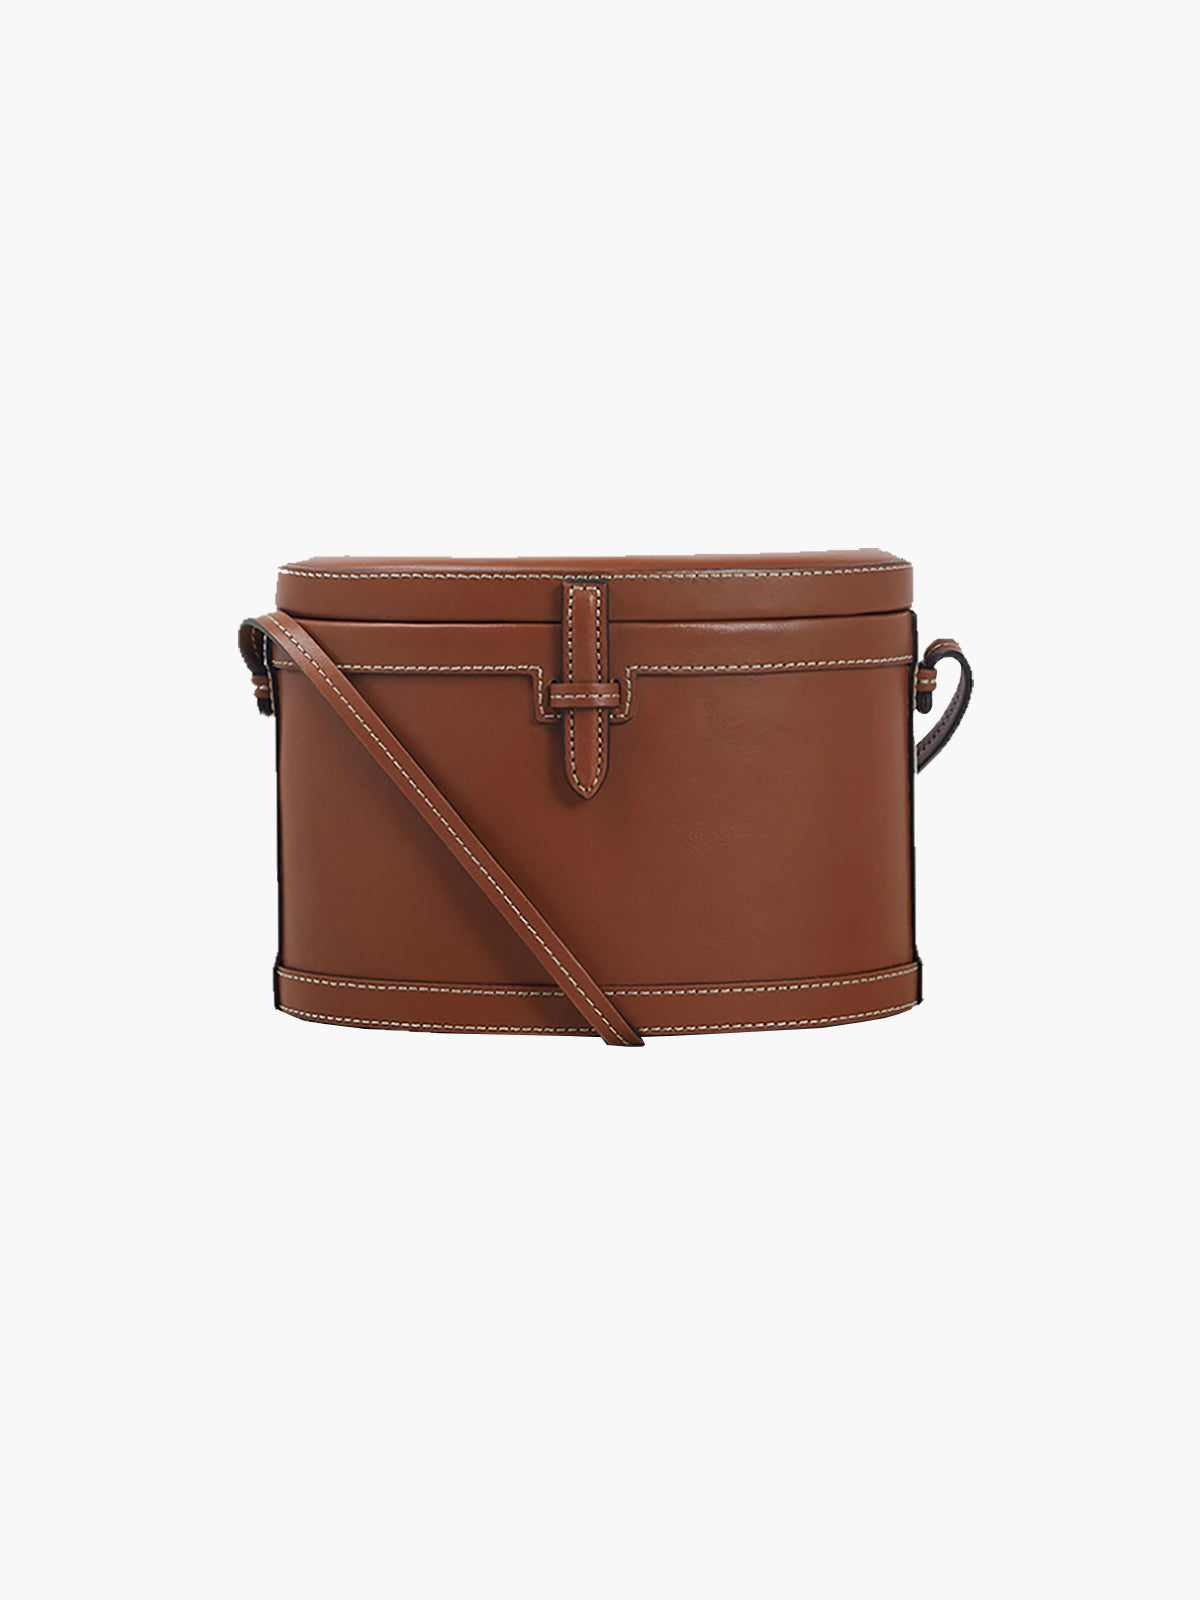 Round Trunk Bag | Stitched Cognac